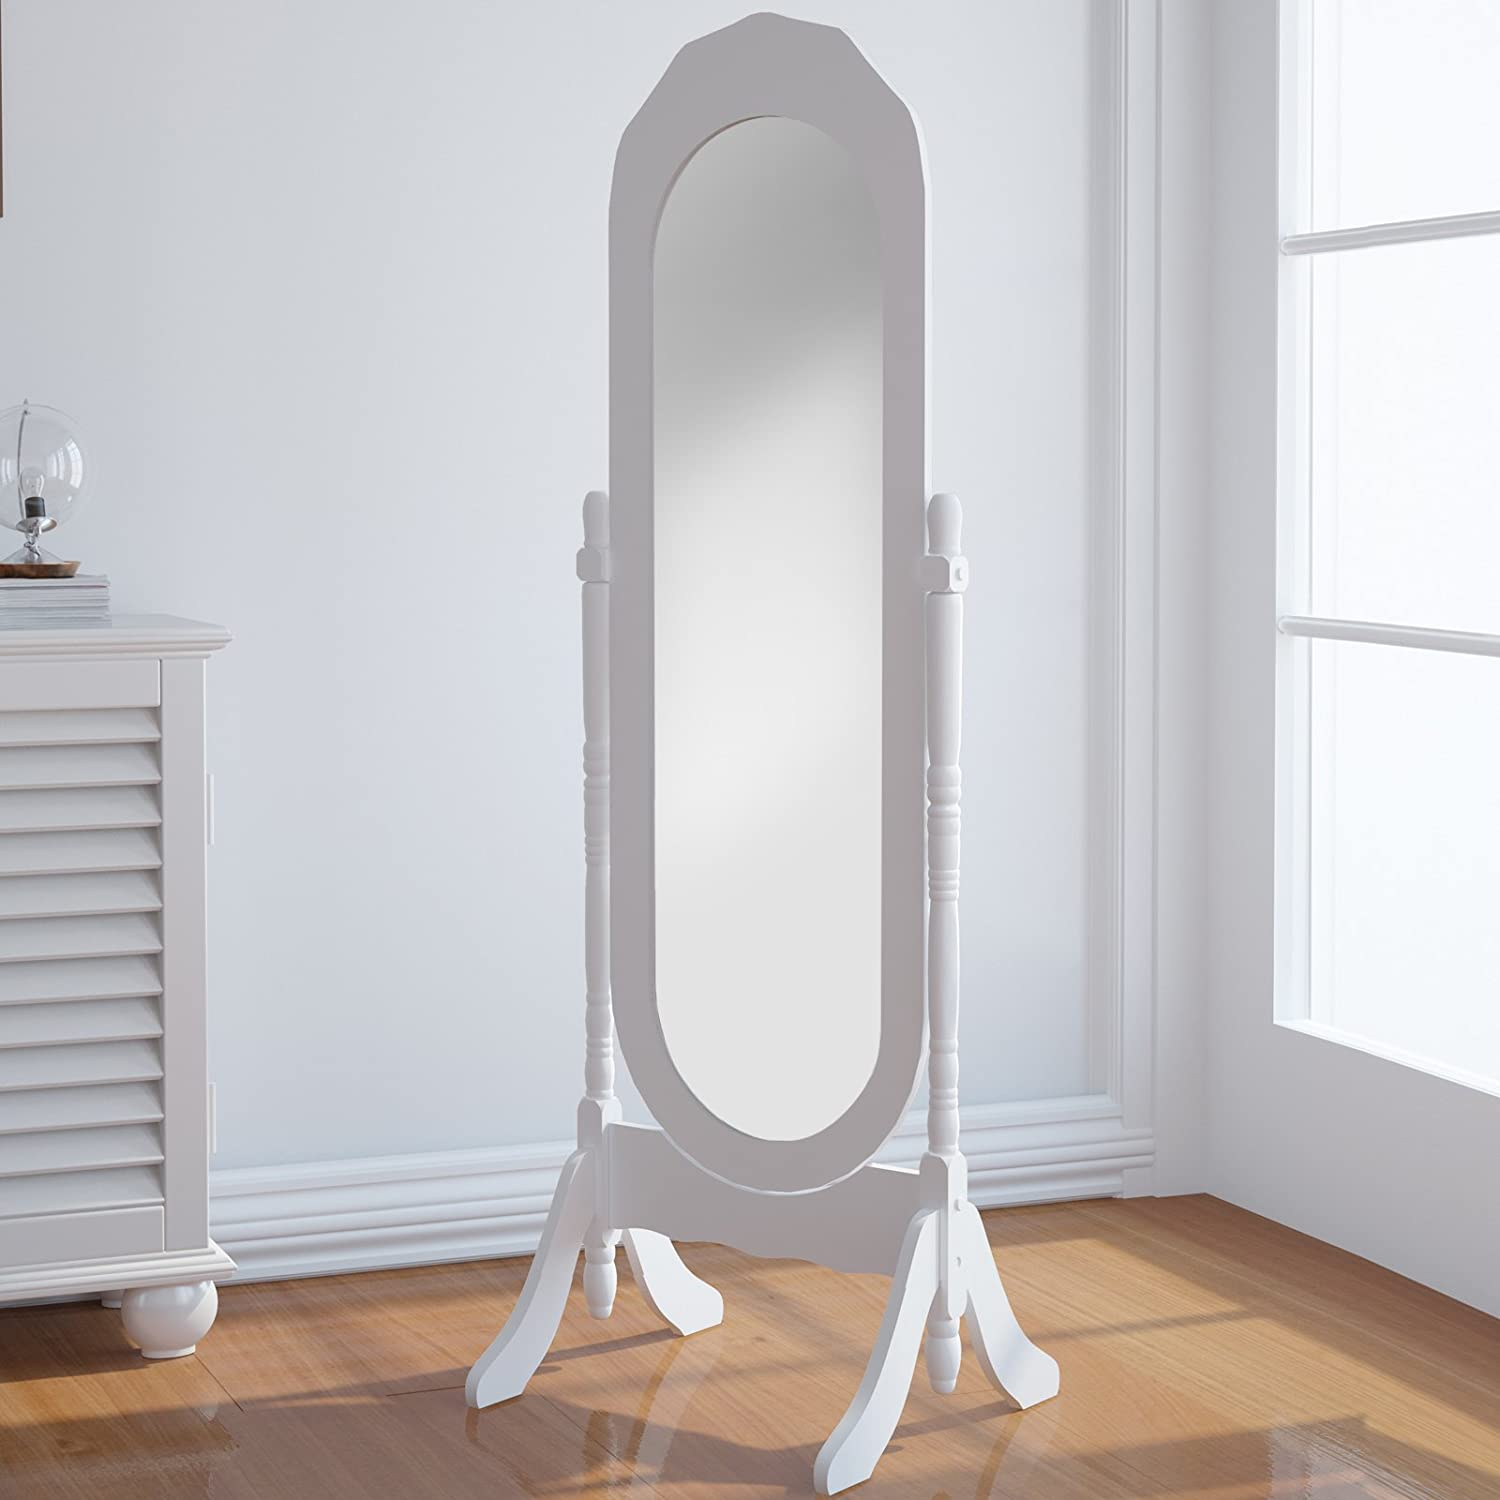 Best miroir de chambre sur pied ideas awesome interior for Grand miroir ikea